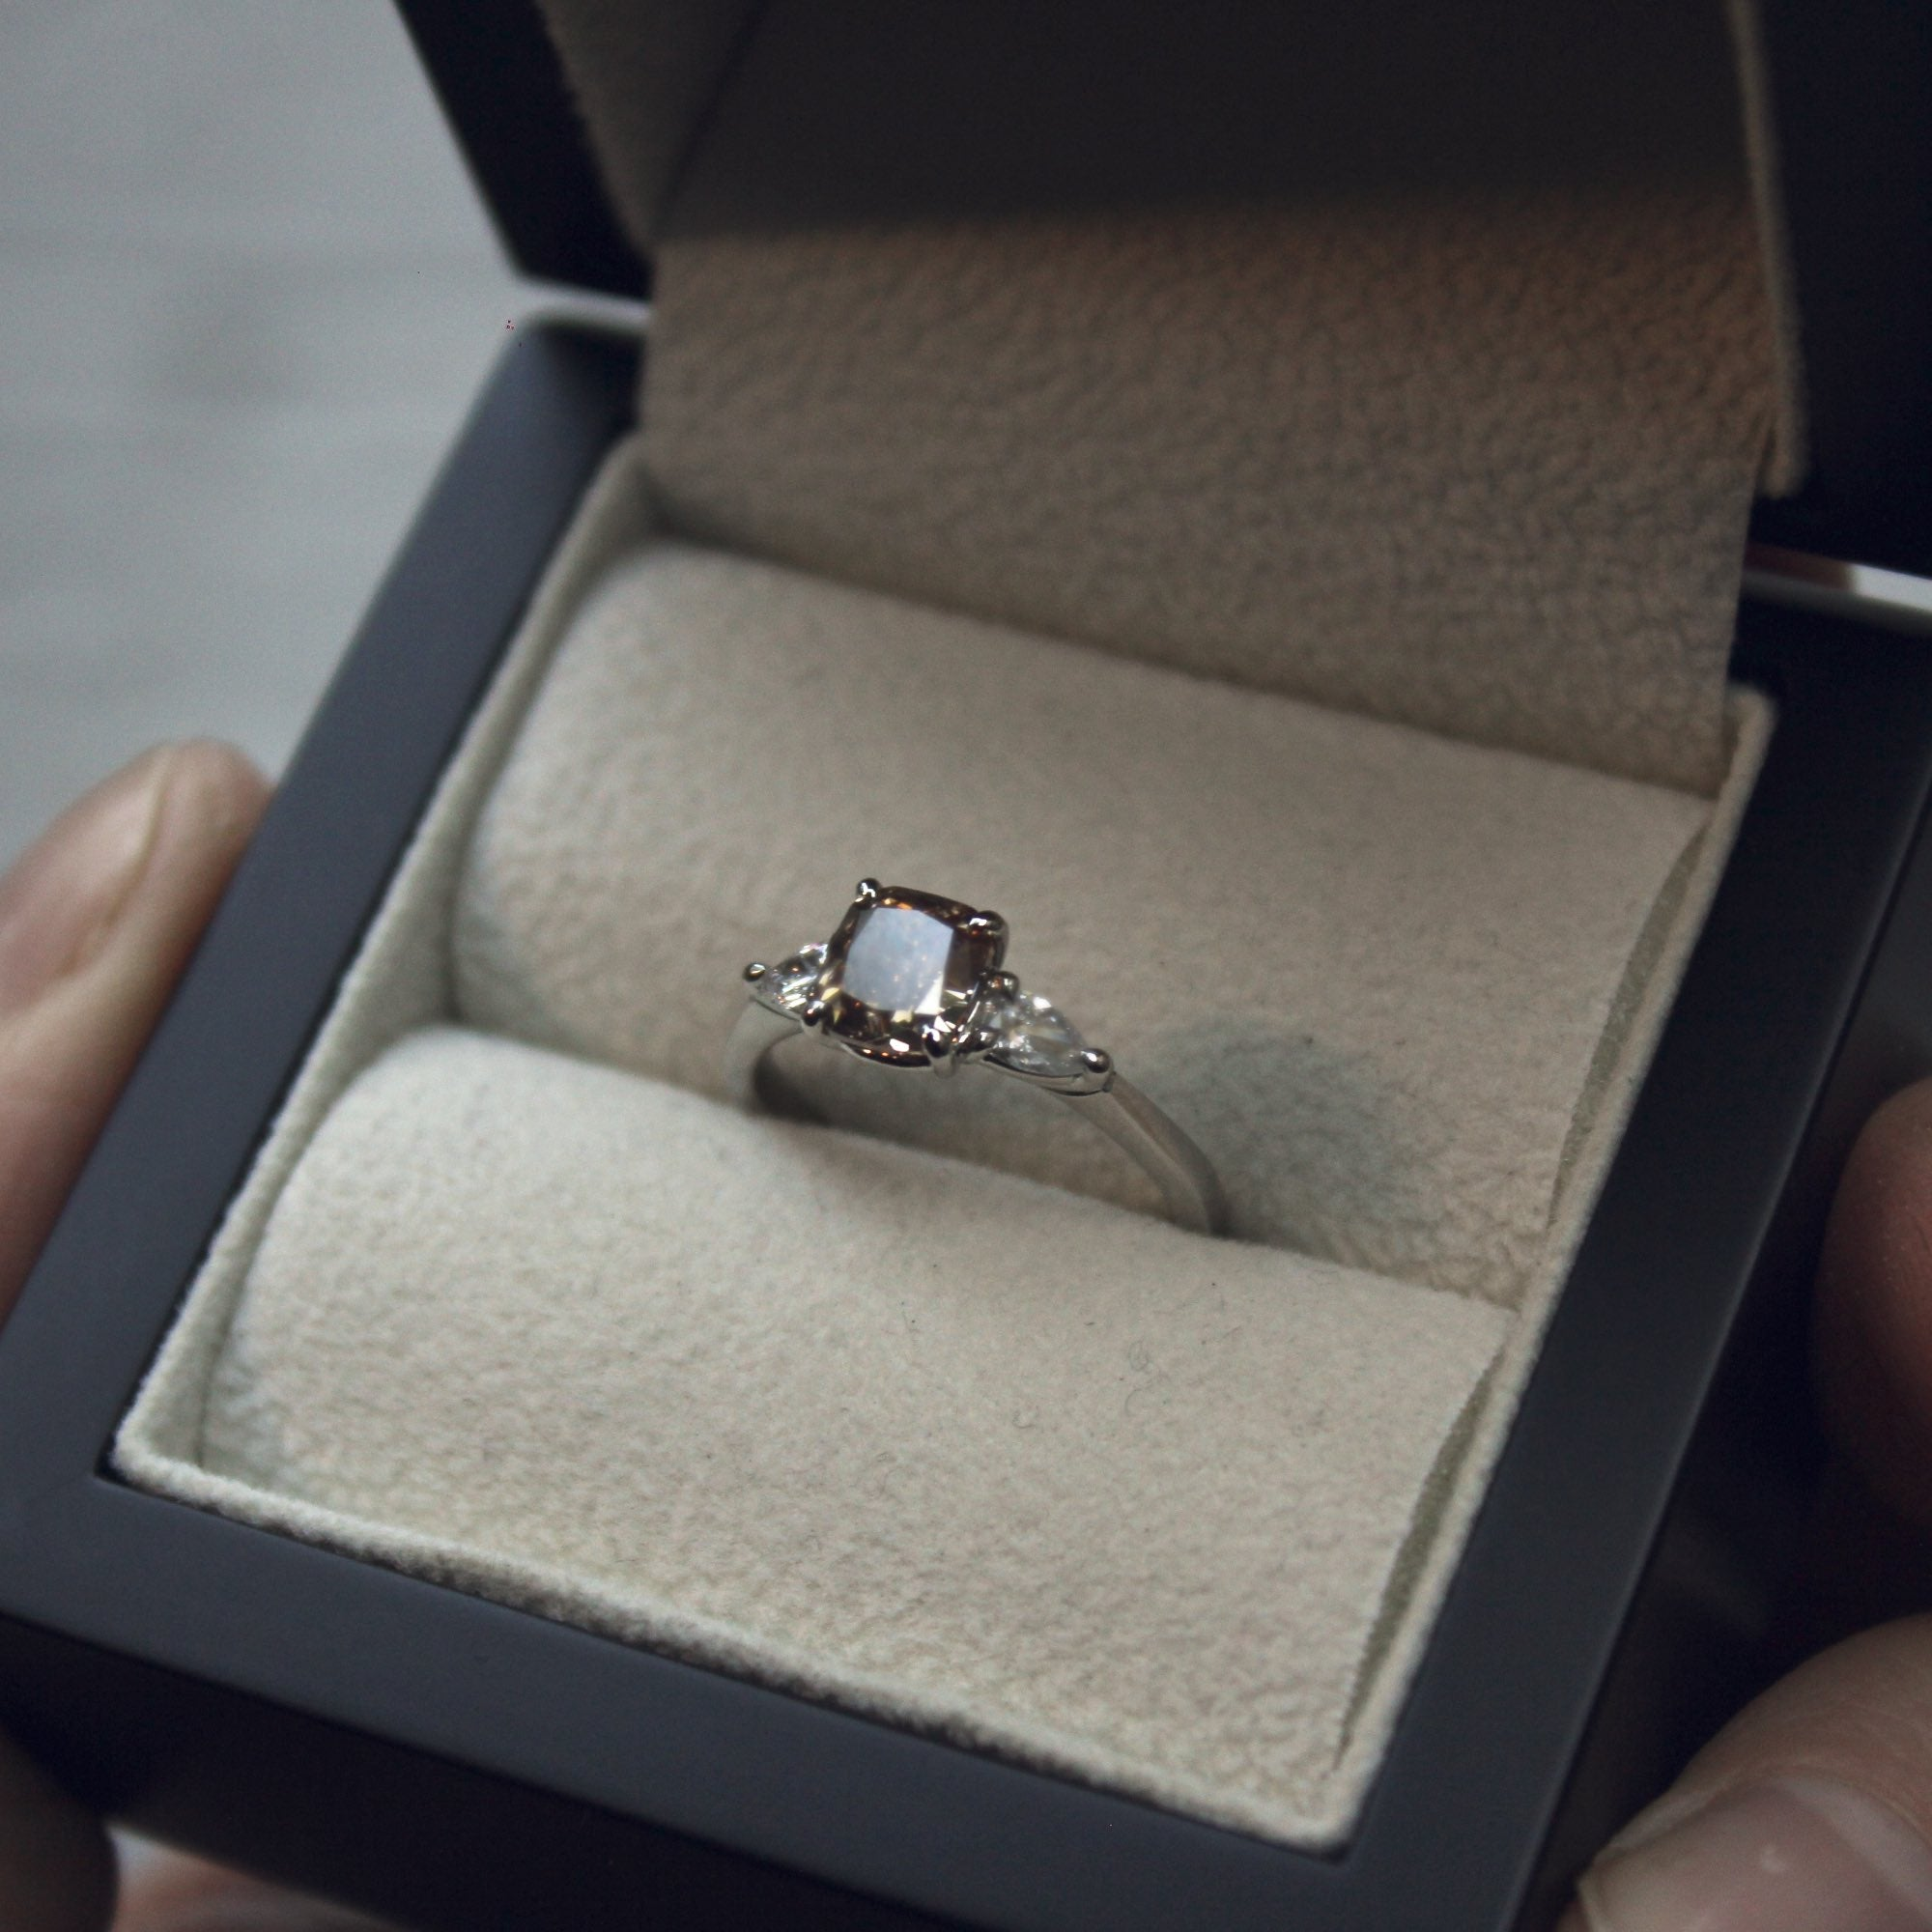 Moira Patience Fine Jewellery Bespoke Commission Champagne Diamond Engagement Ring in Edinburgh